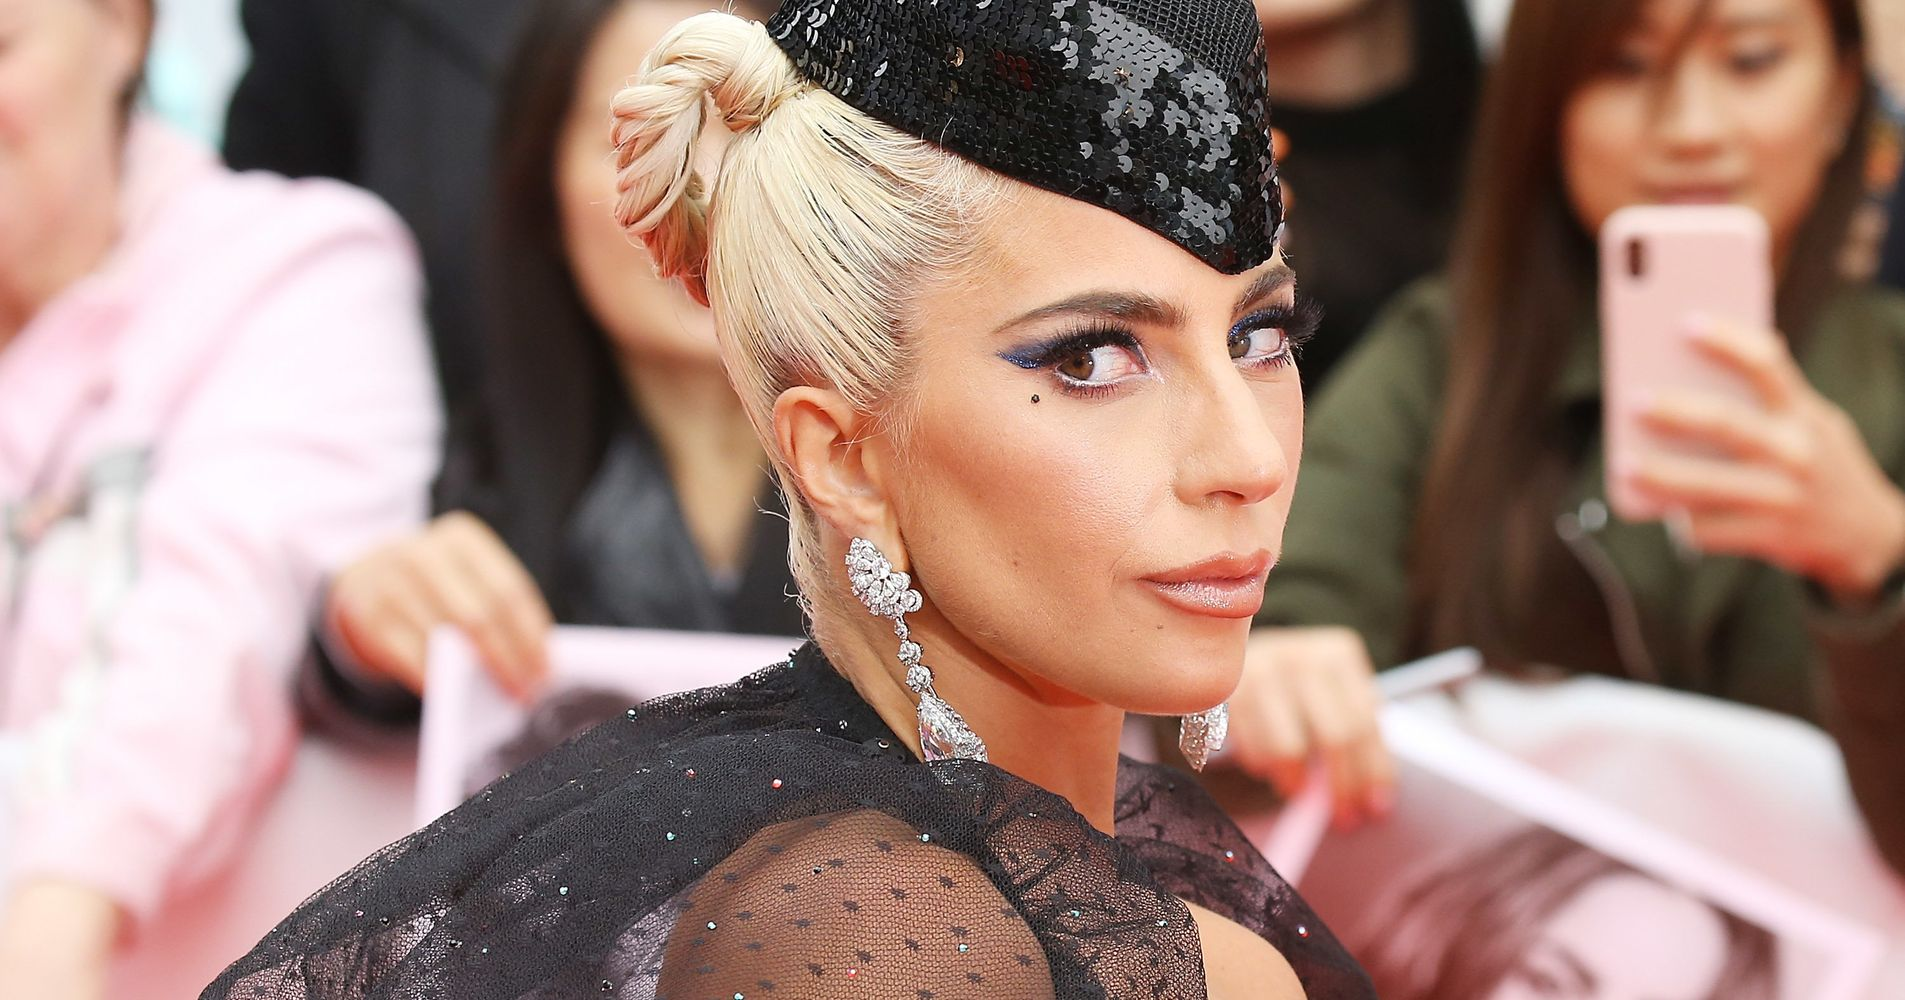 Vogue Writer Notes Lady Gaga's 'Shapely Behind' In Profile Discussing Her Assault